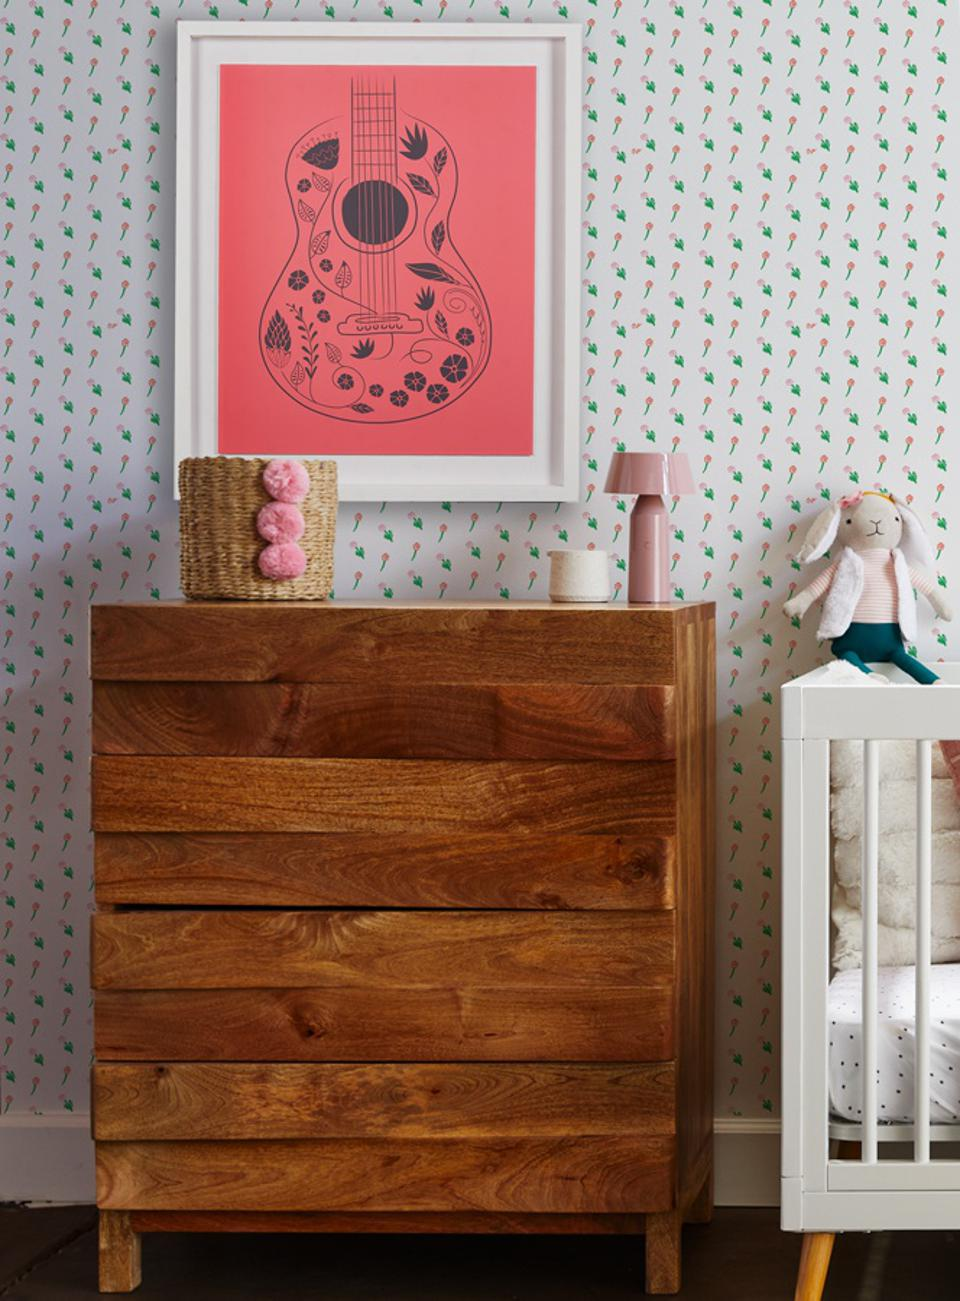 Framed art print of a pink guitar on wall in baby's room near crib